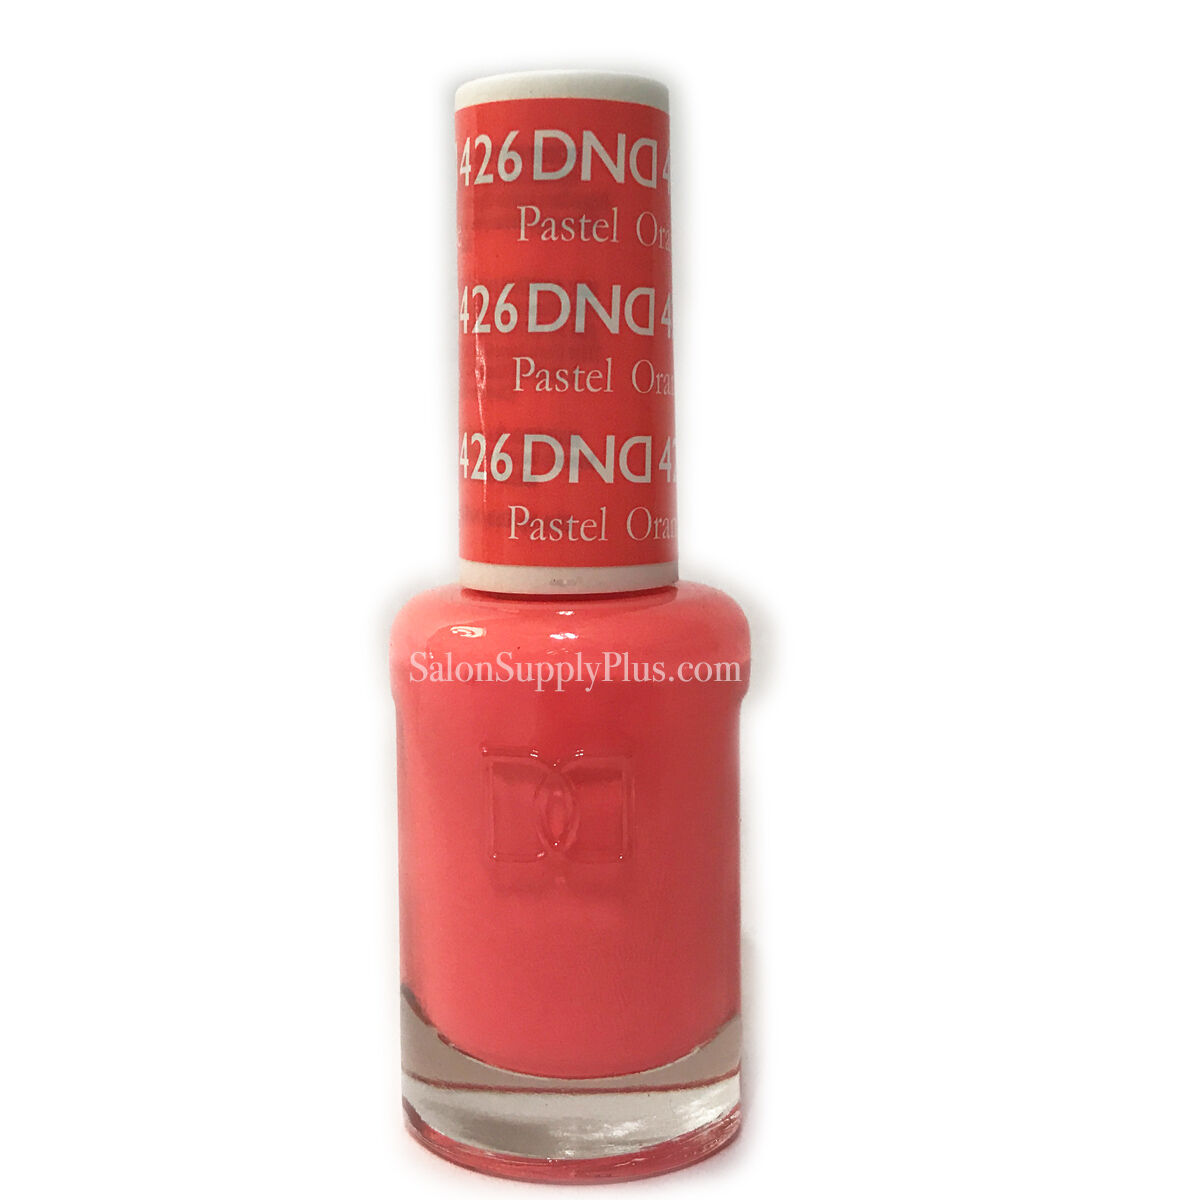 DND Daisy Nail Polish Lacquer -426- Pastel Orange - 5 FL Oz -not Duo ...